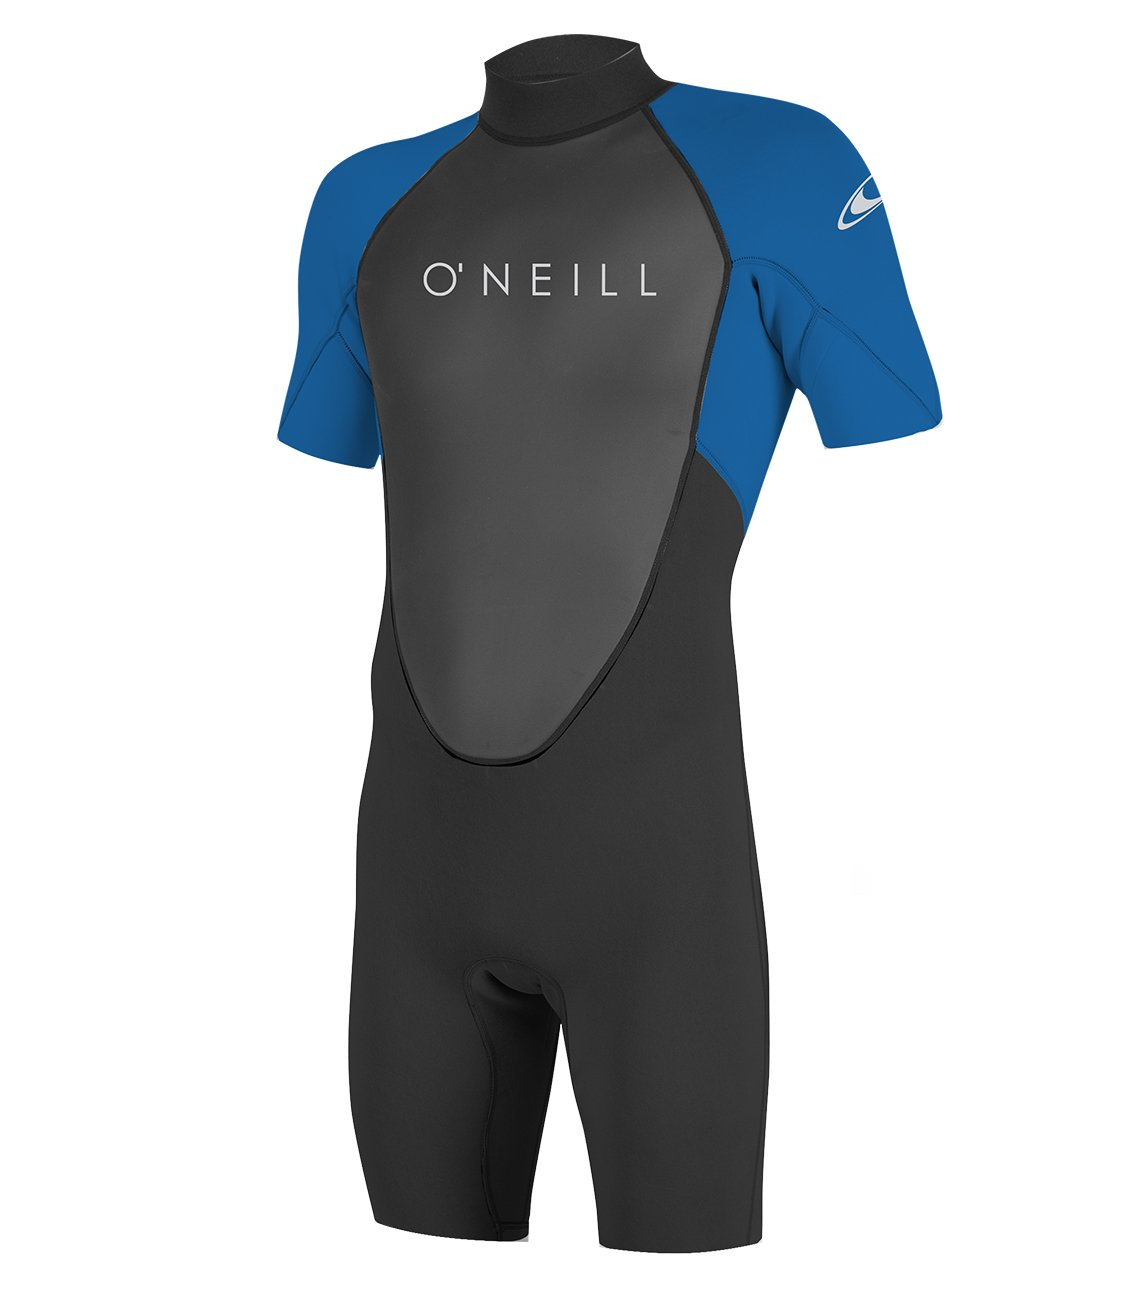 O'Neill Men's Reactor-2 2mm Back Zip Short Sleeve Spring Wetsuit, Black/Ocean, X-Large by O'Neill Wetsuits